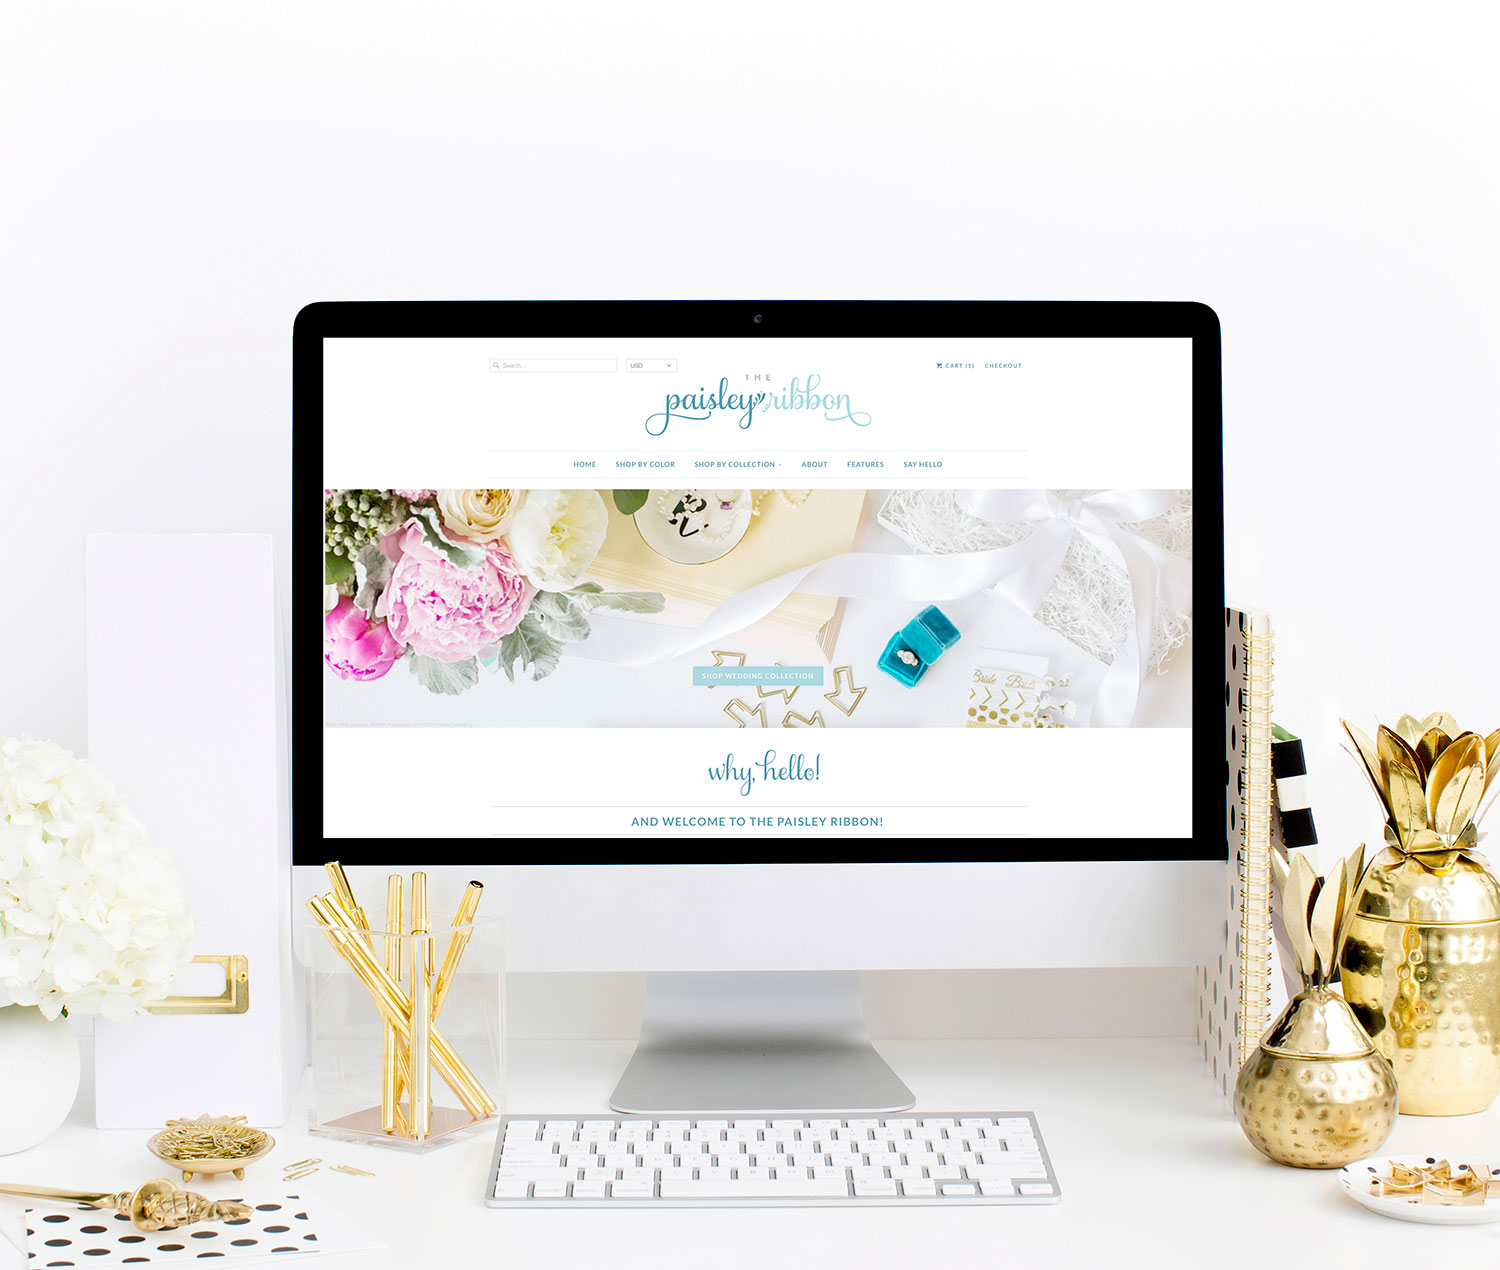 The Paisley Ribbon | Brand Reveal | Branding by Ashlee Proffitt